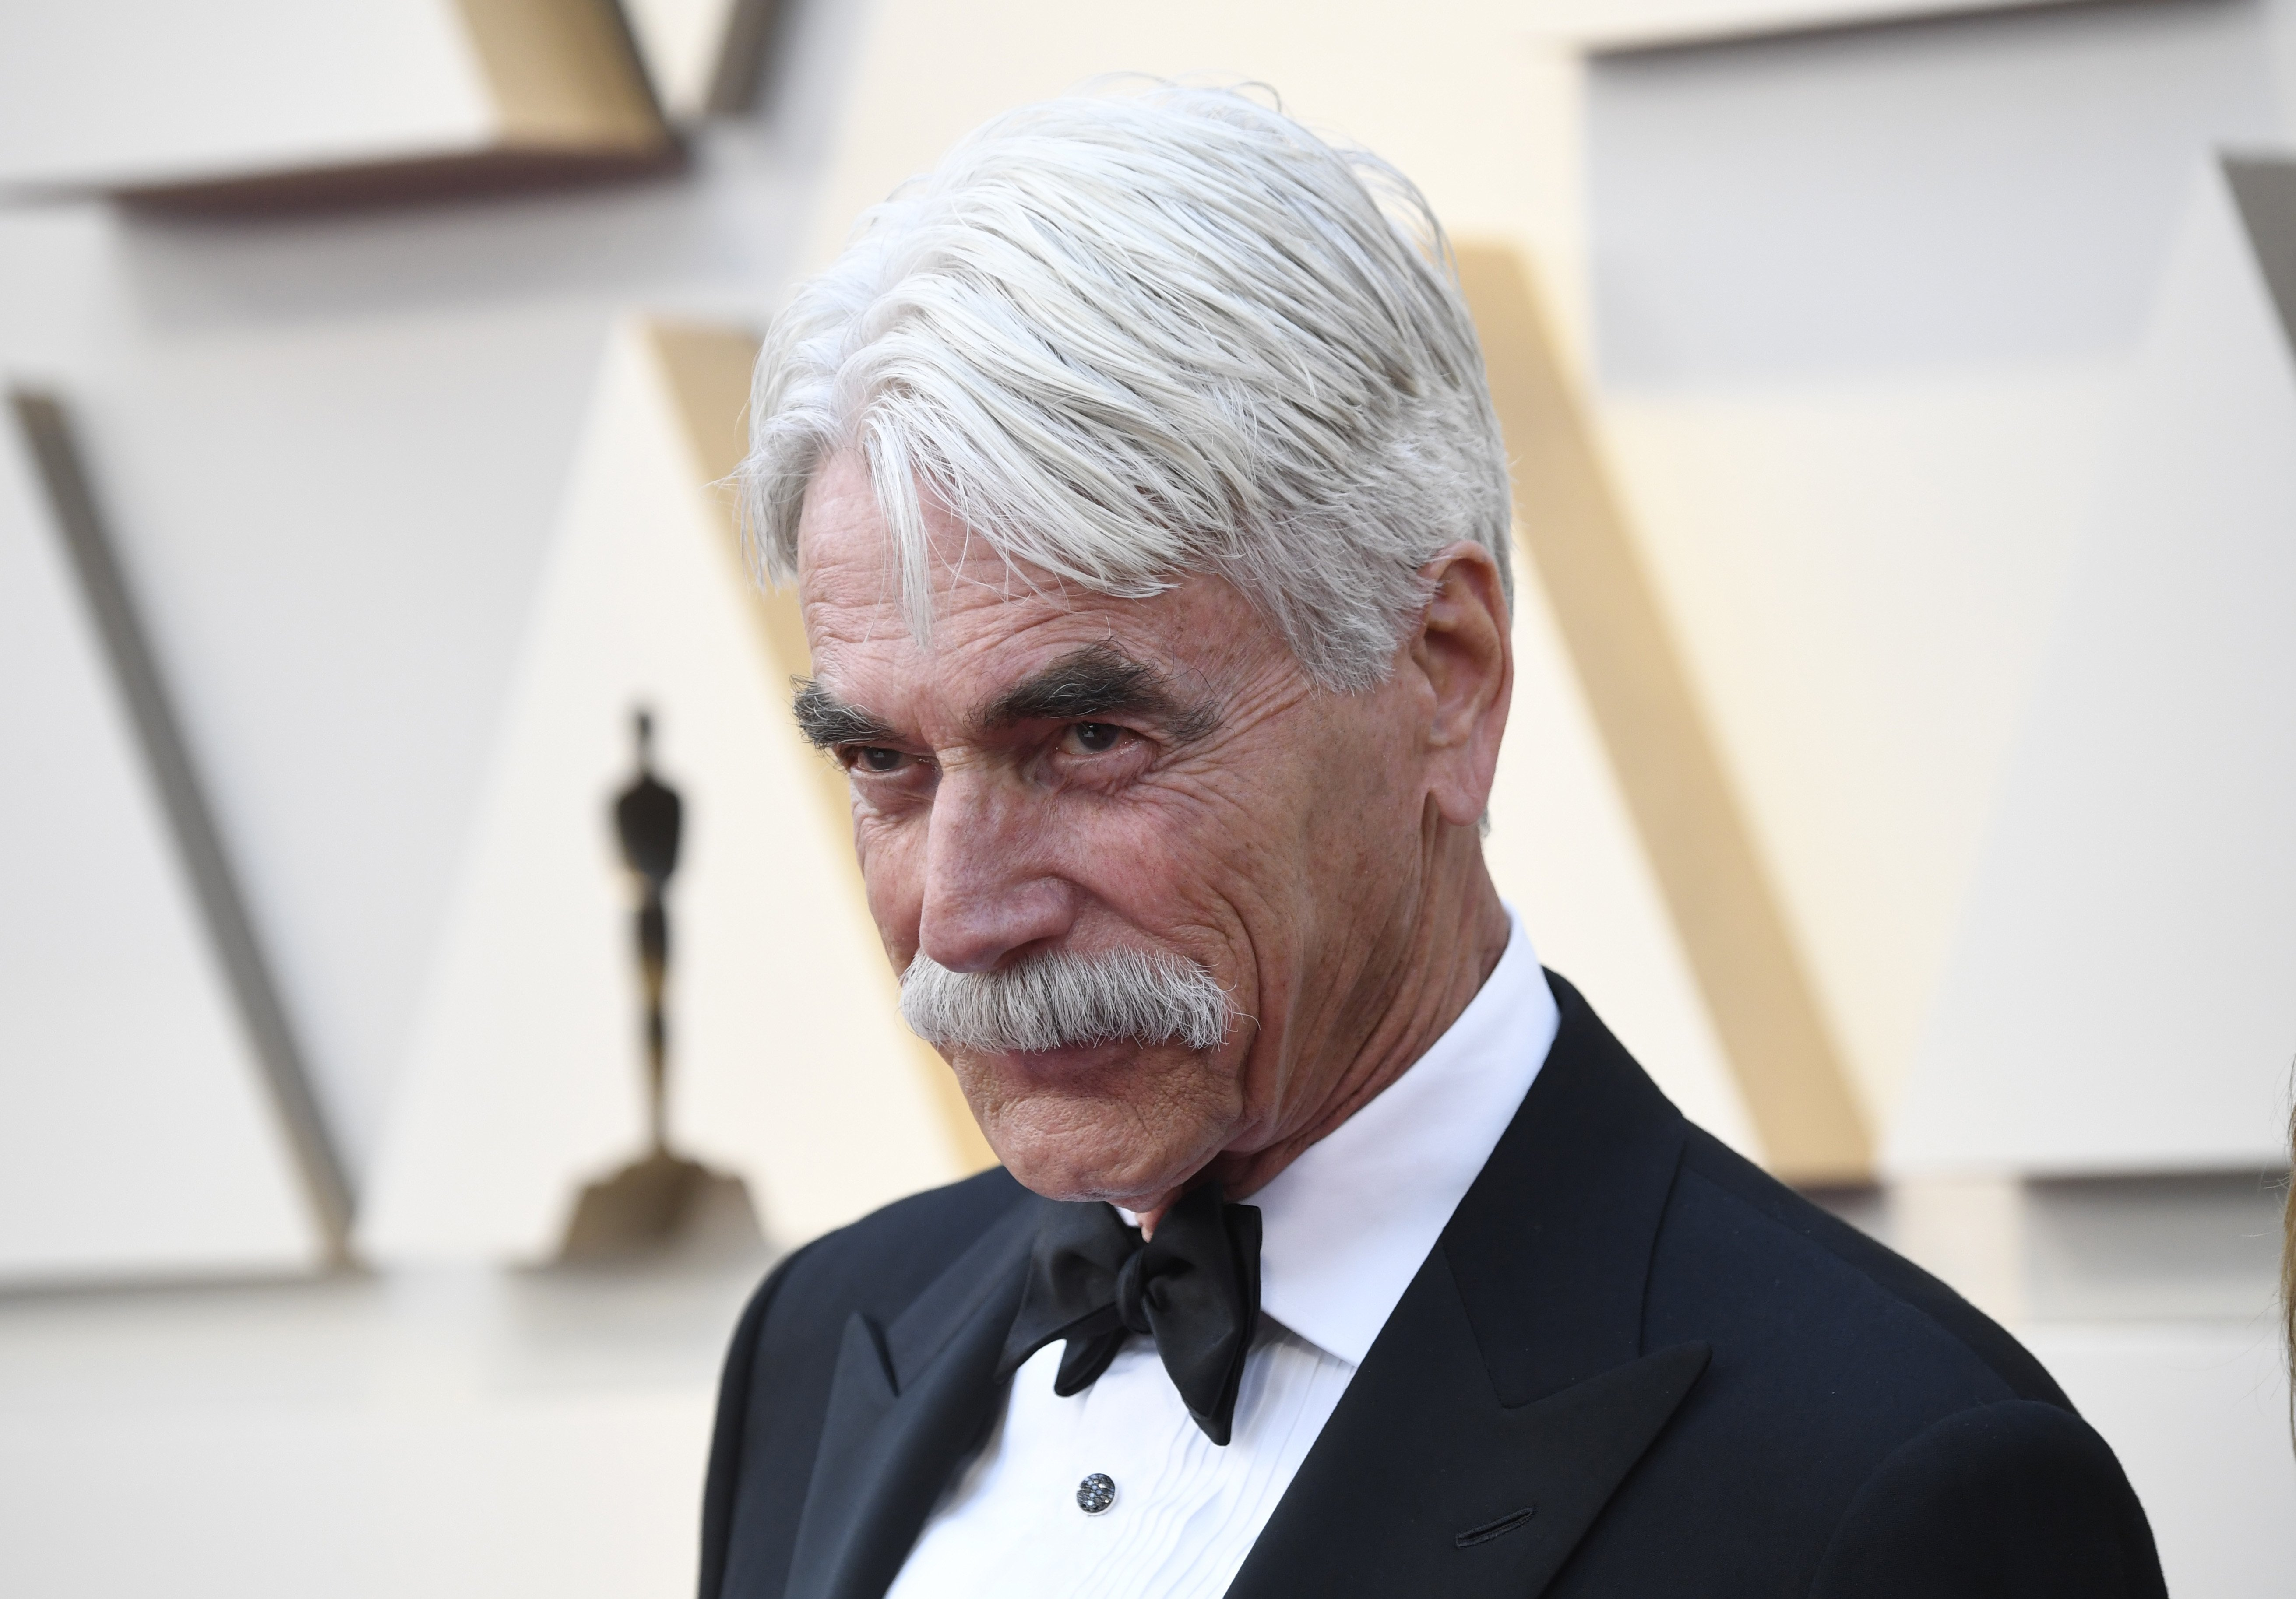 Sam Elliott at the 91st Annual Academy Awards at Hollywood and Highland on February 24, 2019 | Photo: GettyImages